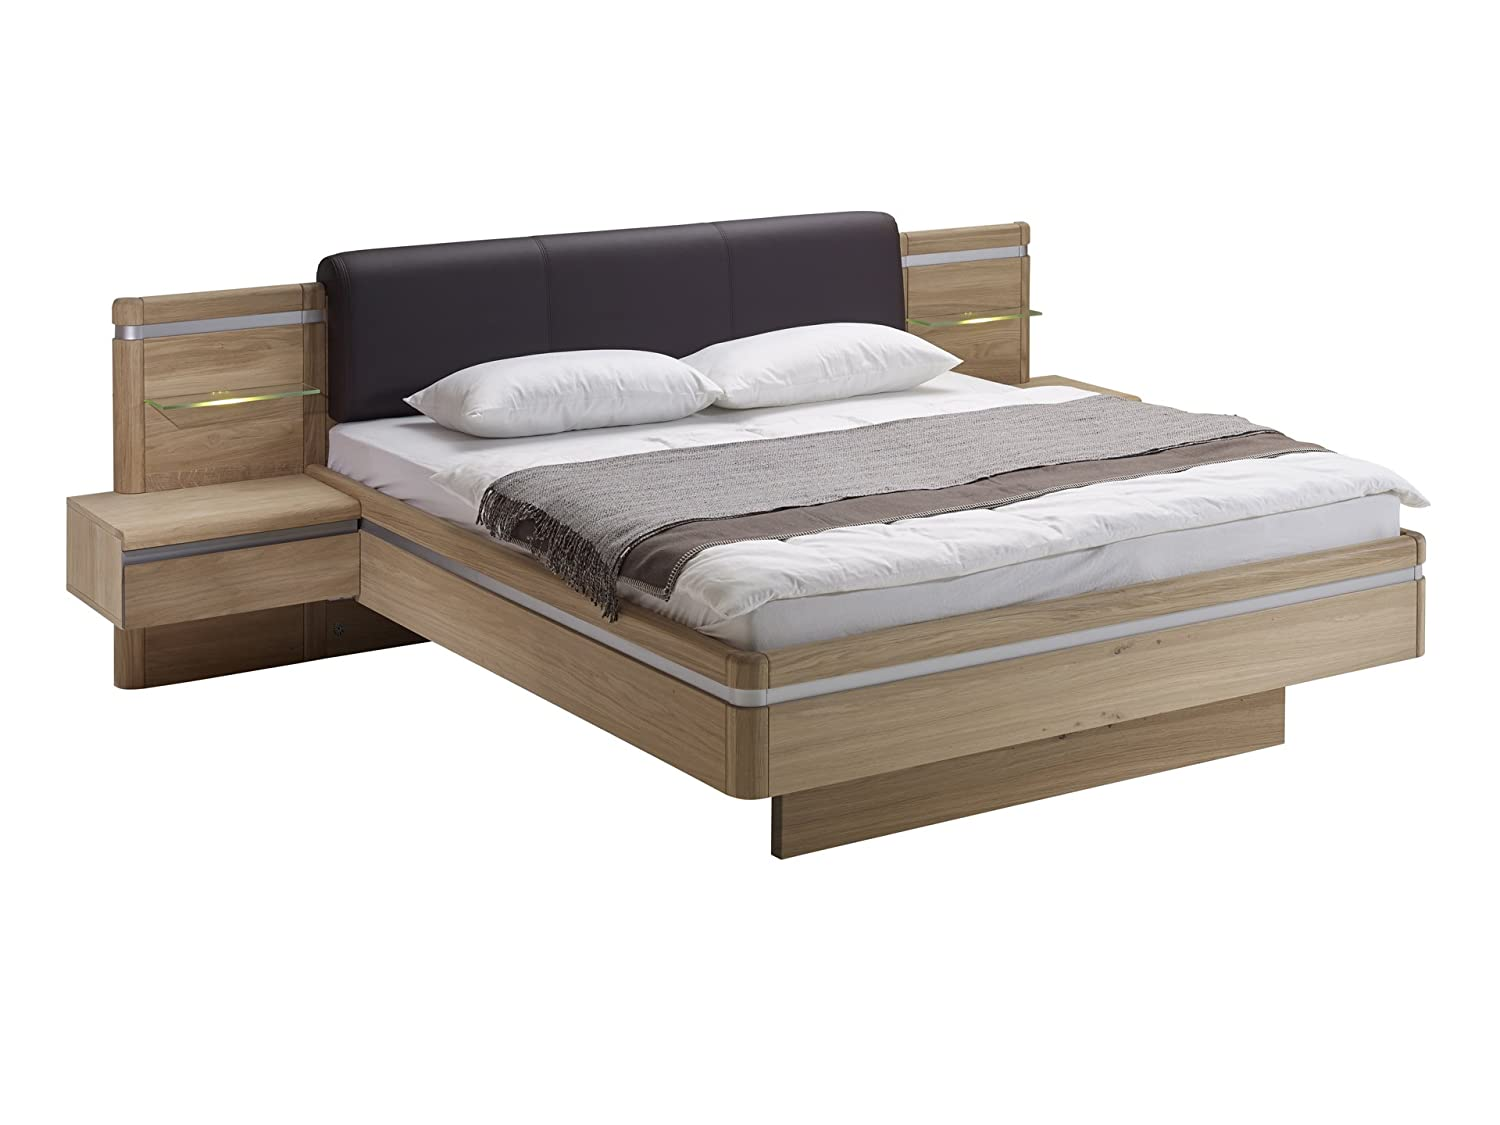 Firstloft 401-1800 Bett